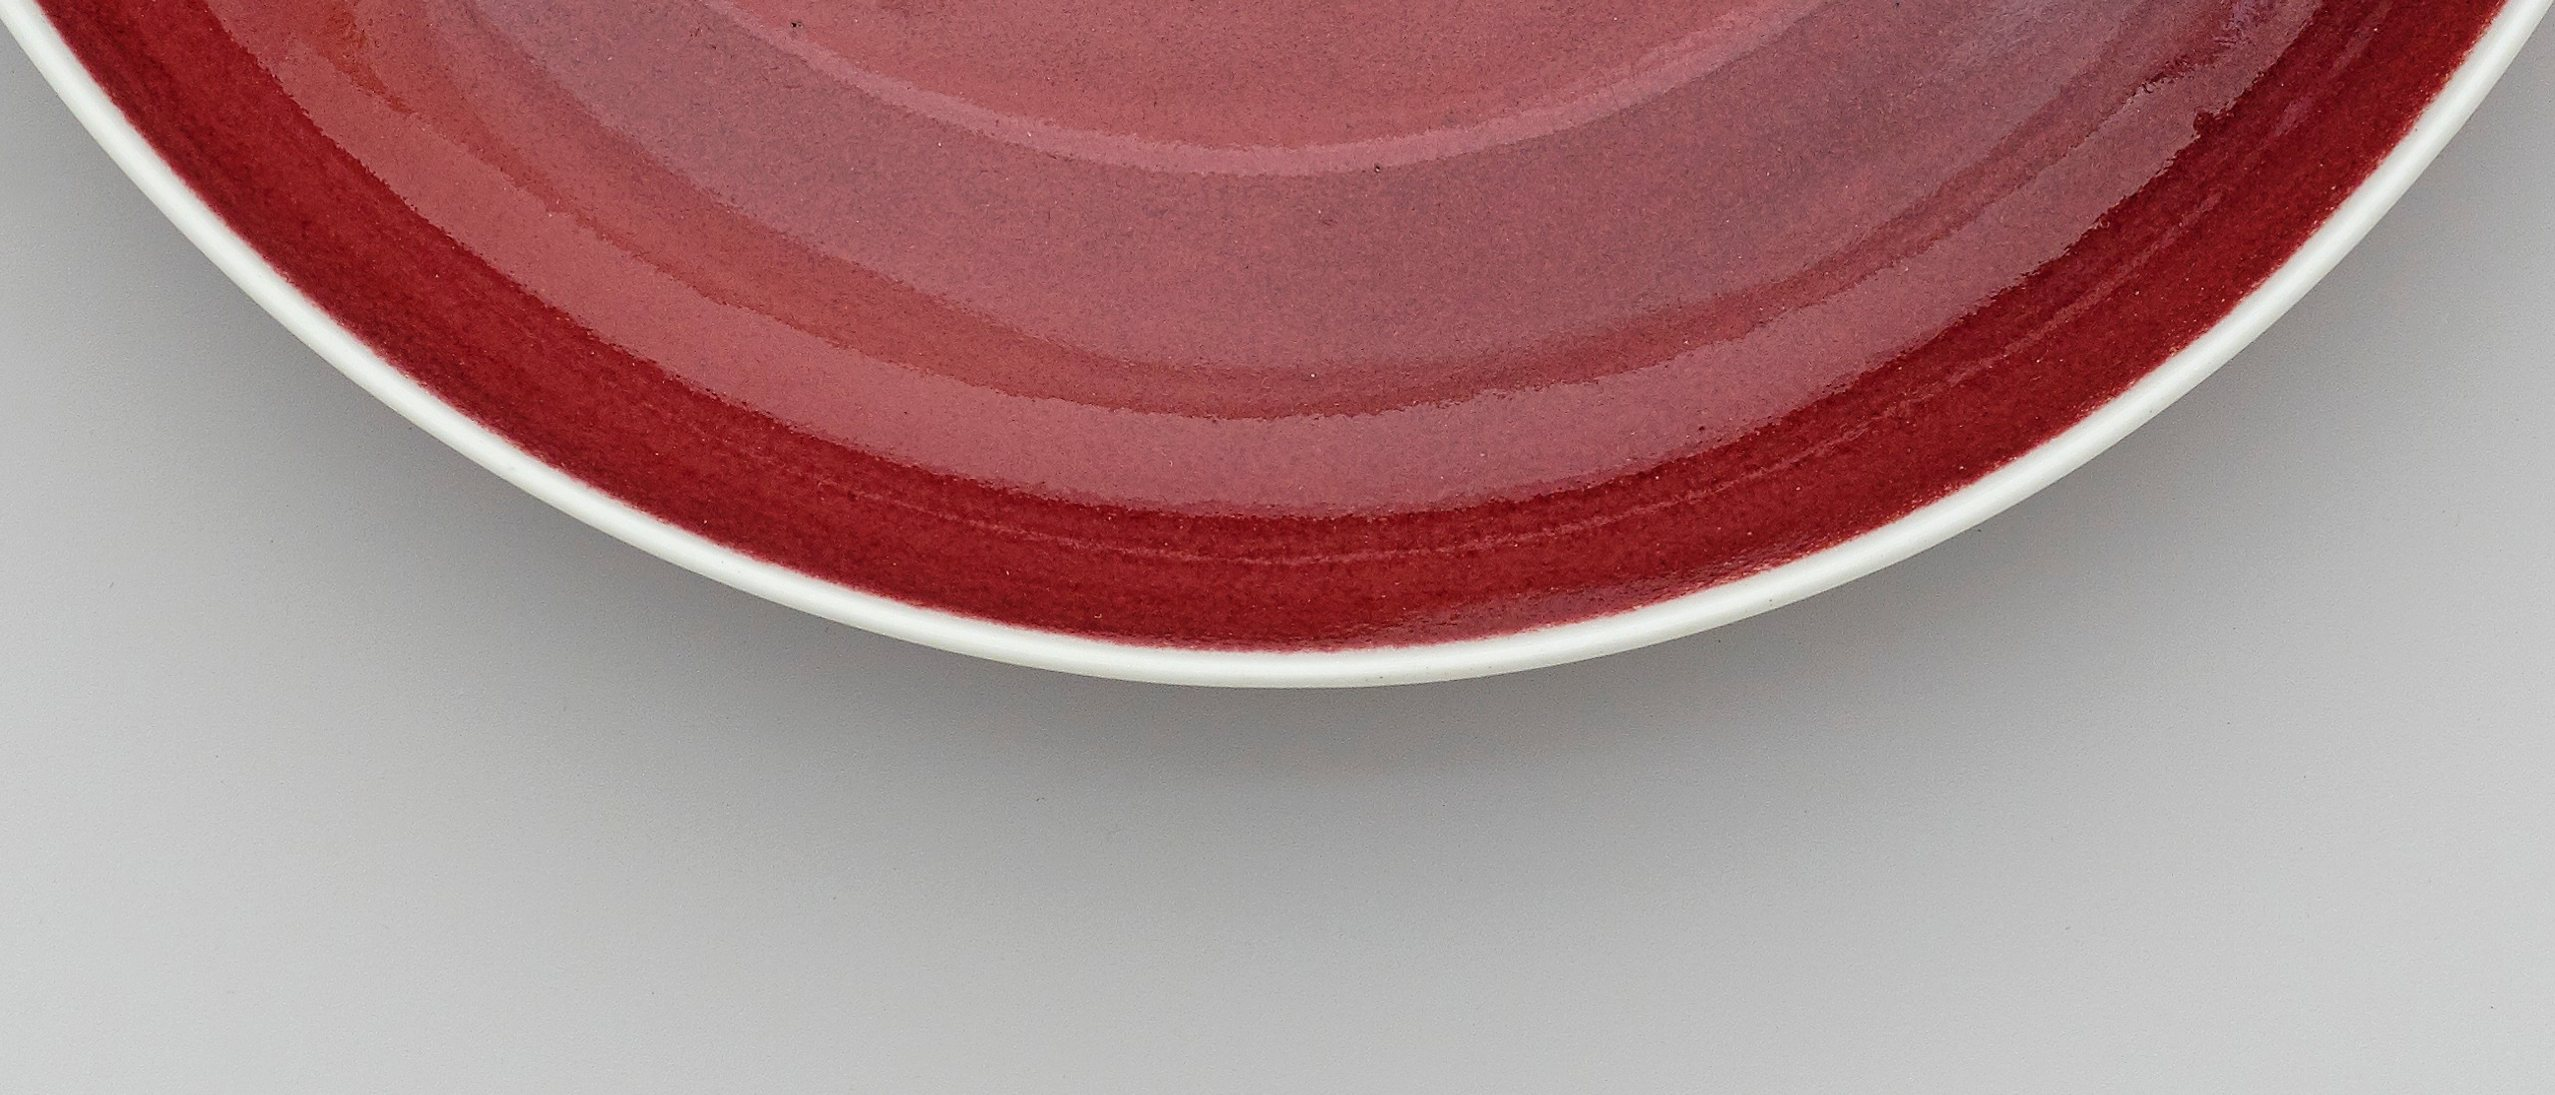 Dish with copper-red glaze, and a Xuande mark in cobalt oxide on the base